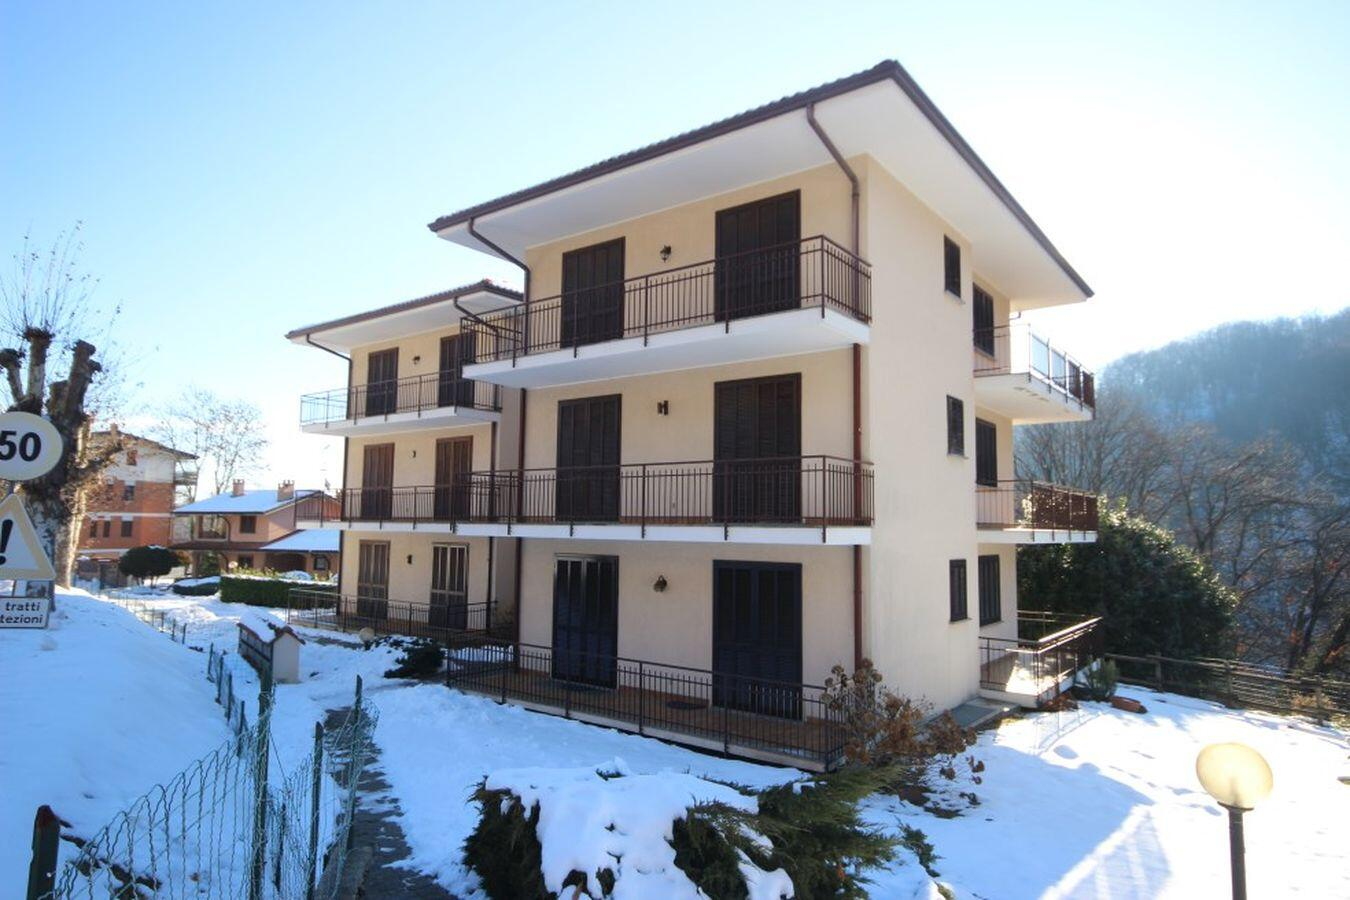 Apartment in residential area Gignese